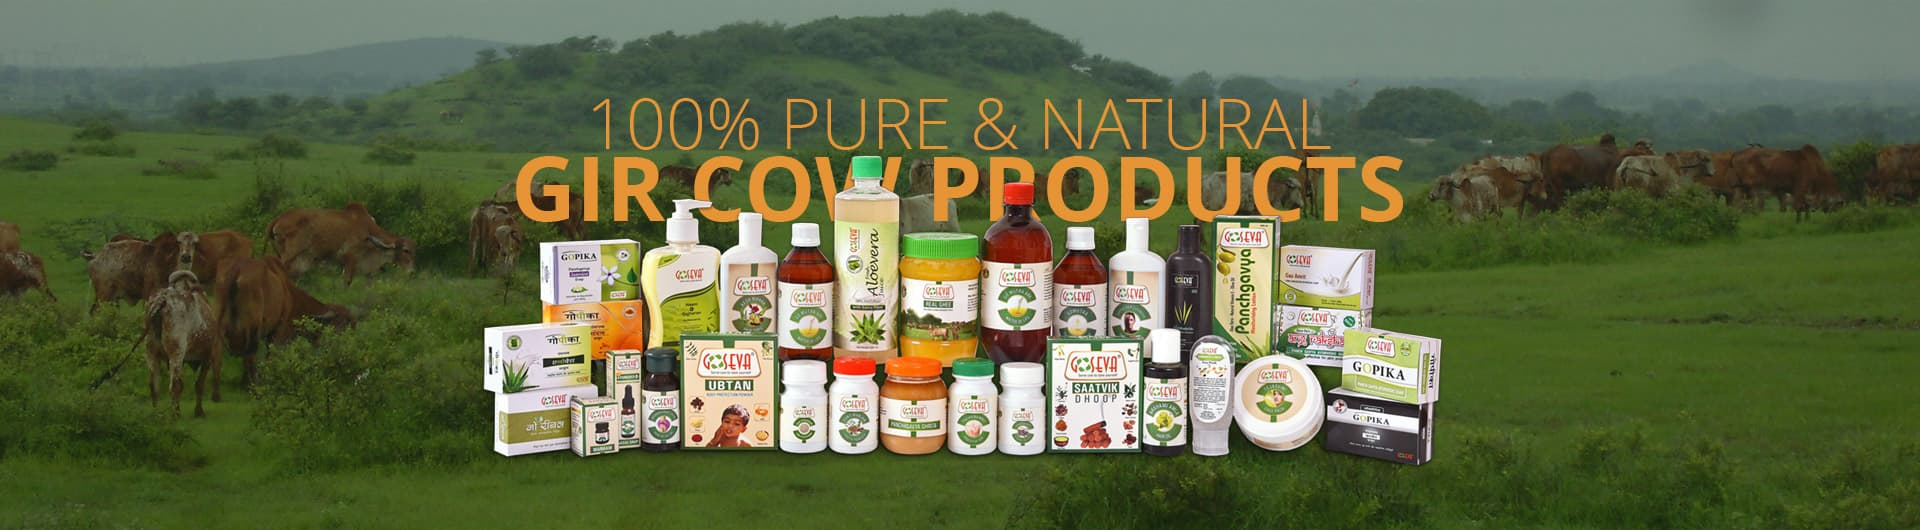 Gir Cow Products